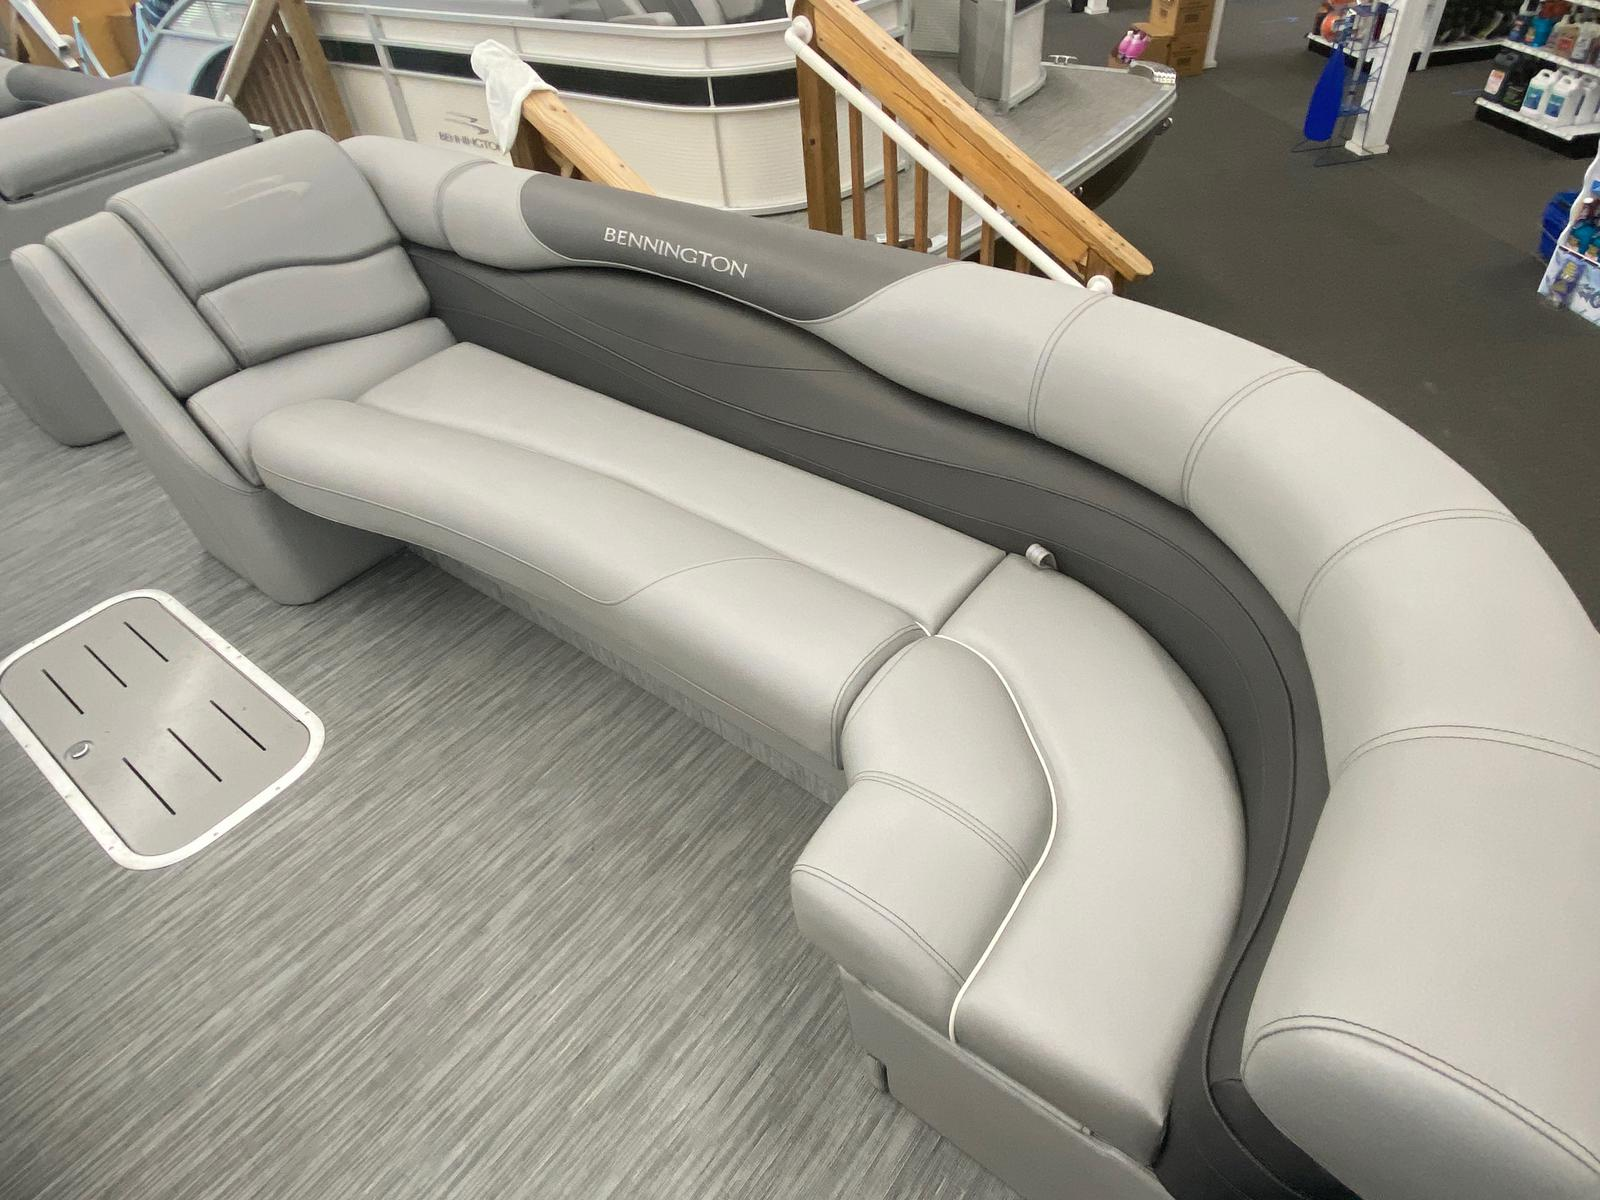 2021 Bennington boat for sale, model of the boat is 25 RL Tri-Toon ESP Performance Package & Image # 15 of 16